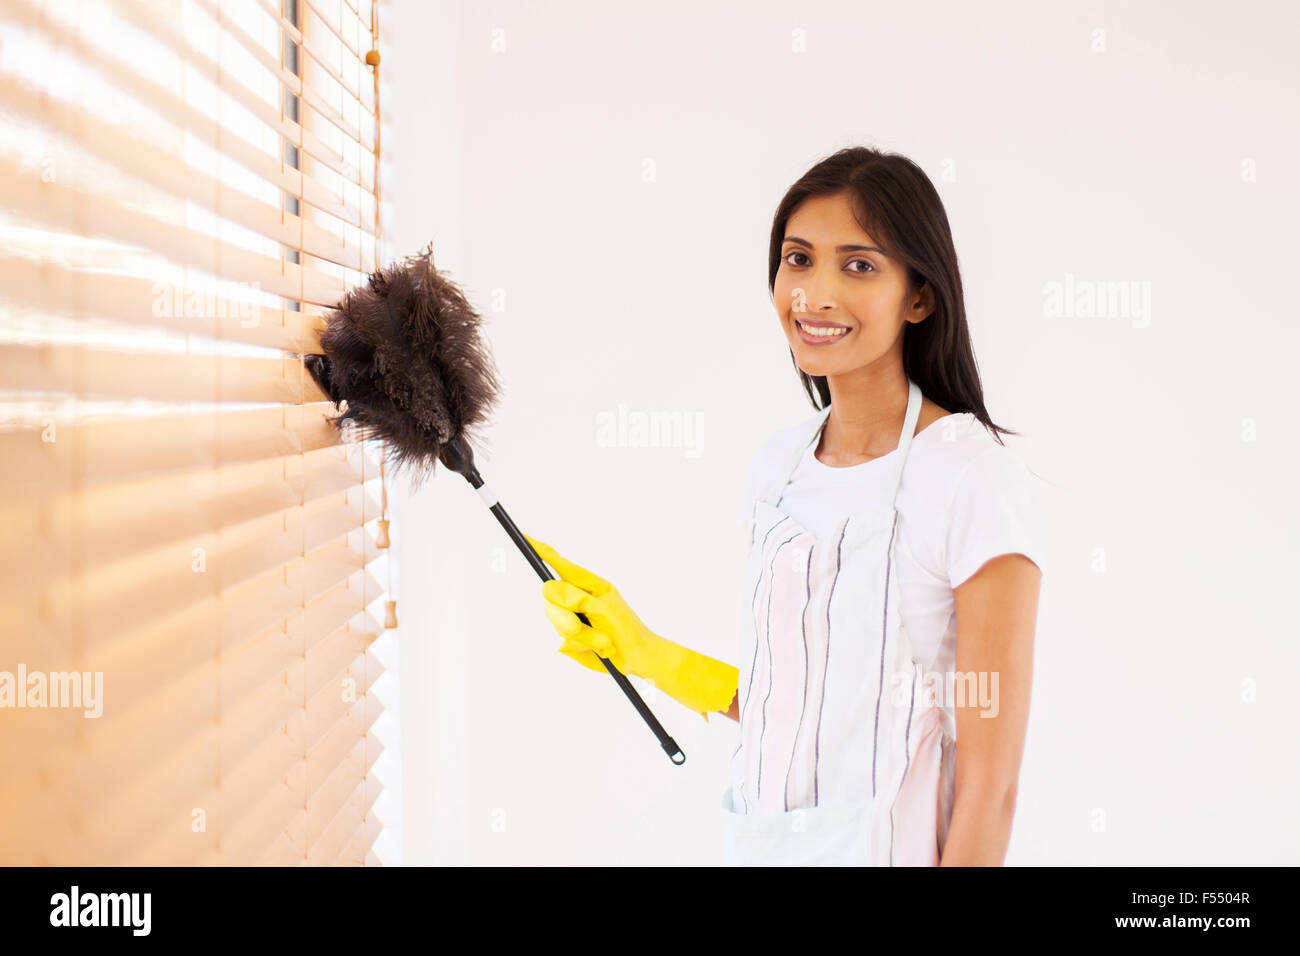 Pretty Young Indian Woman Cleaning Window Blinds With Feather Duster Stock Photo Alamy